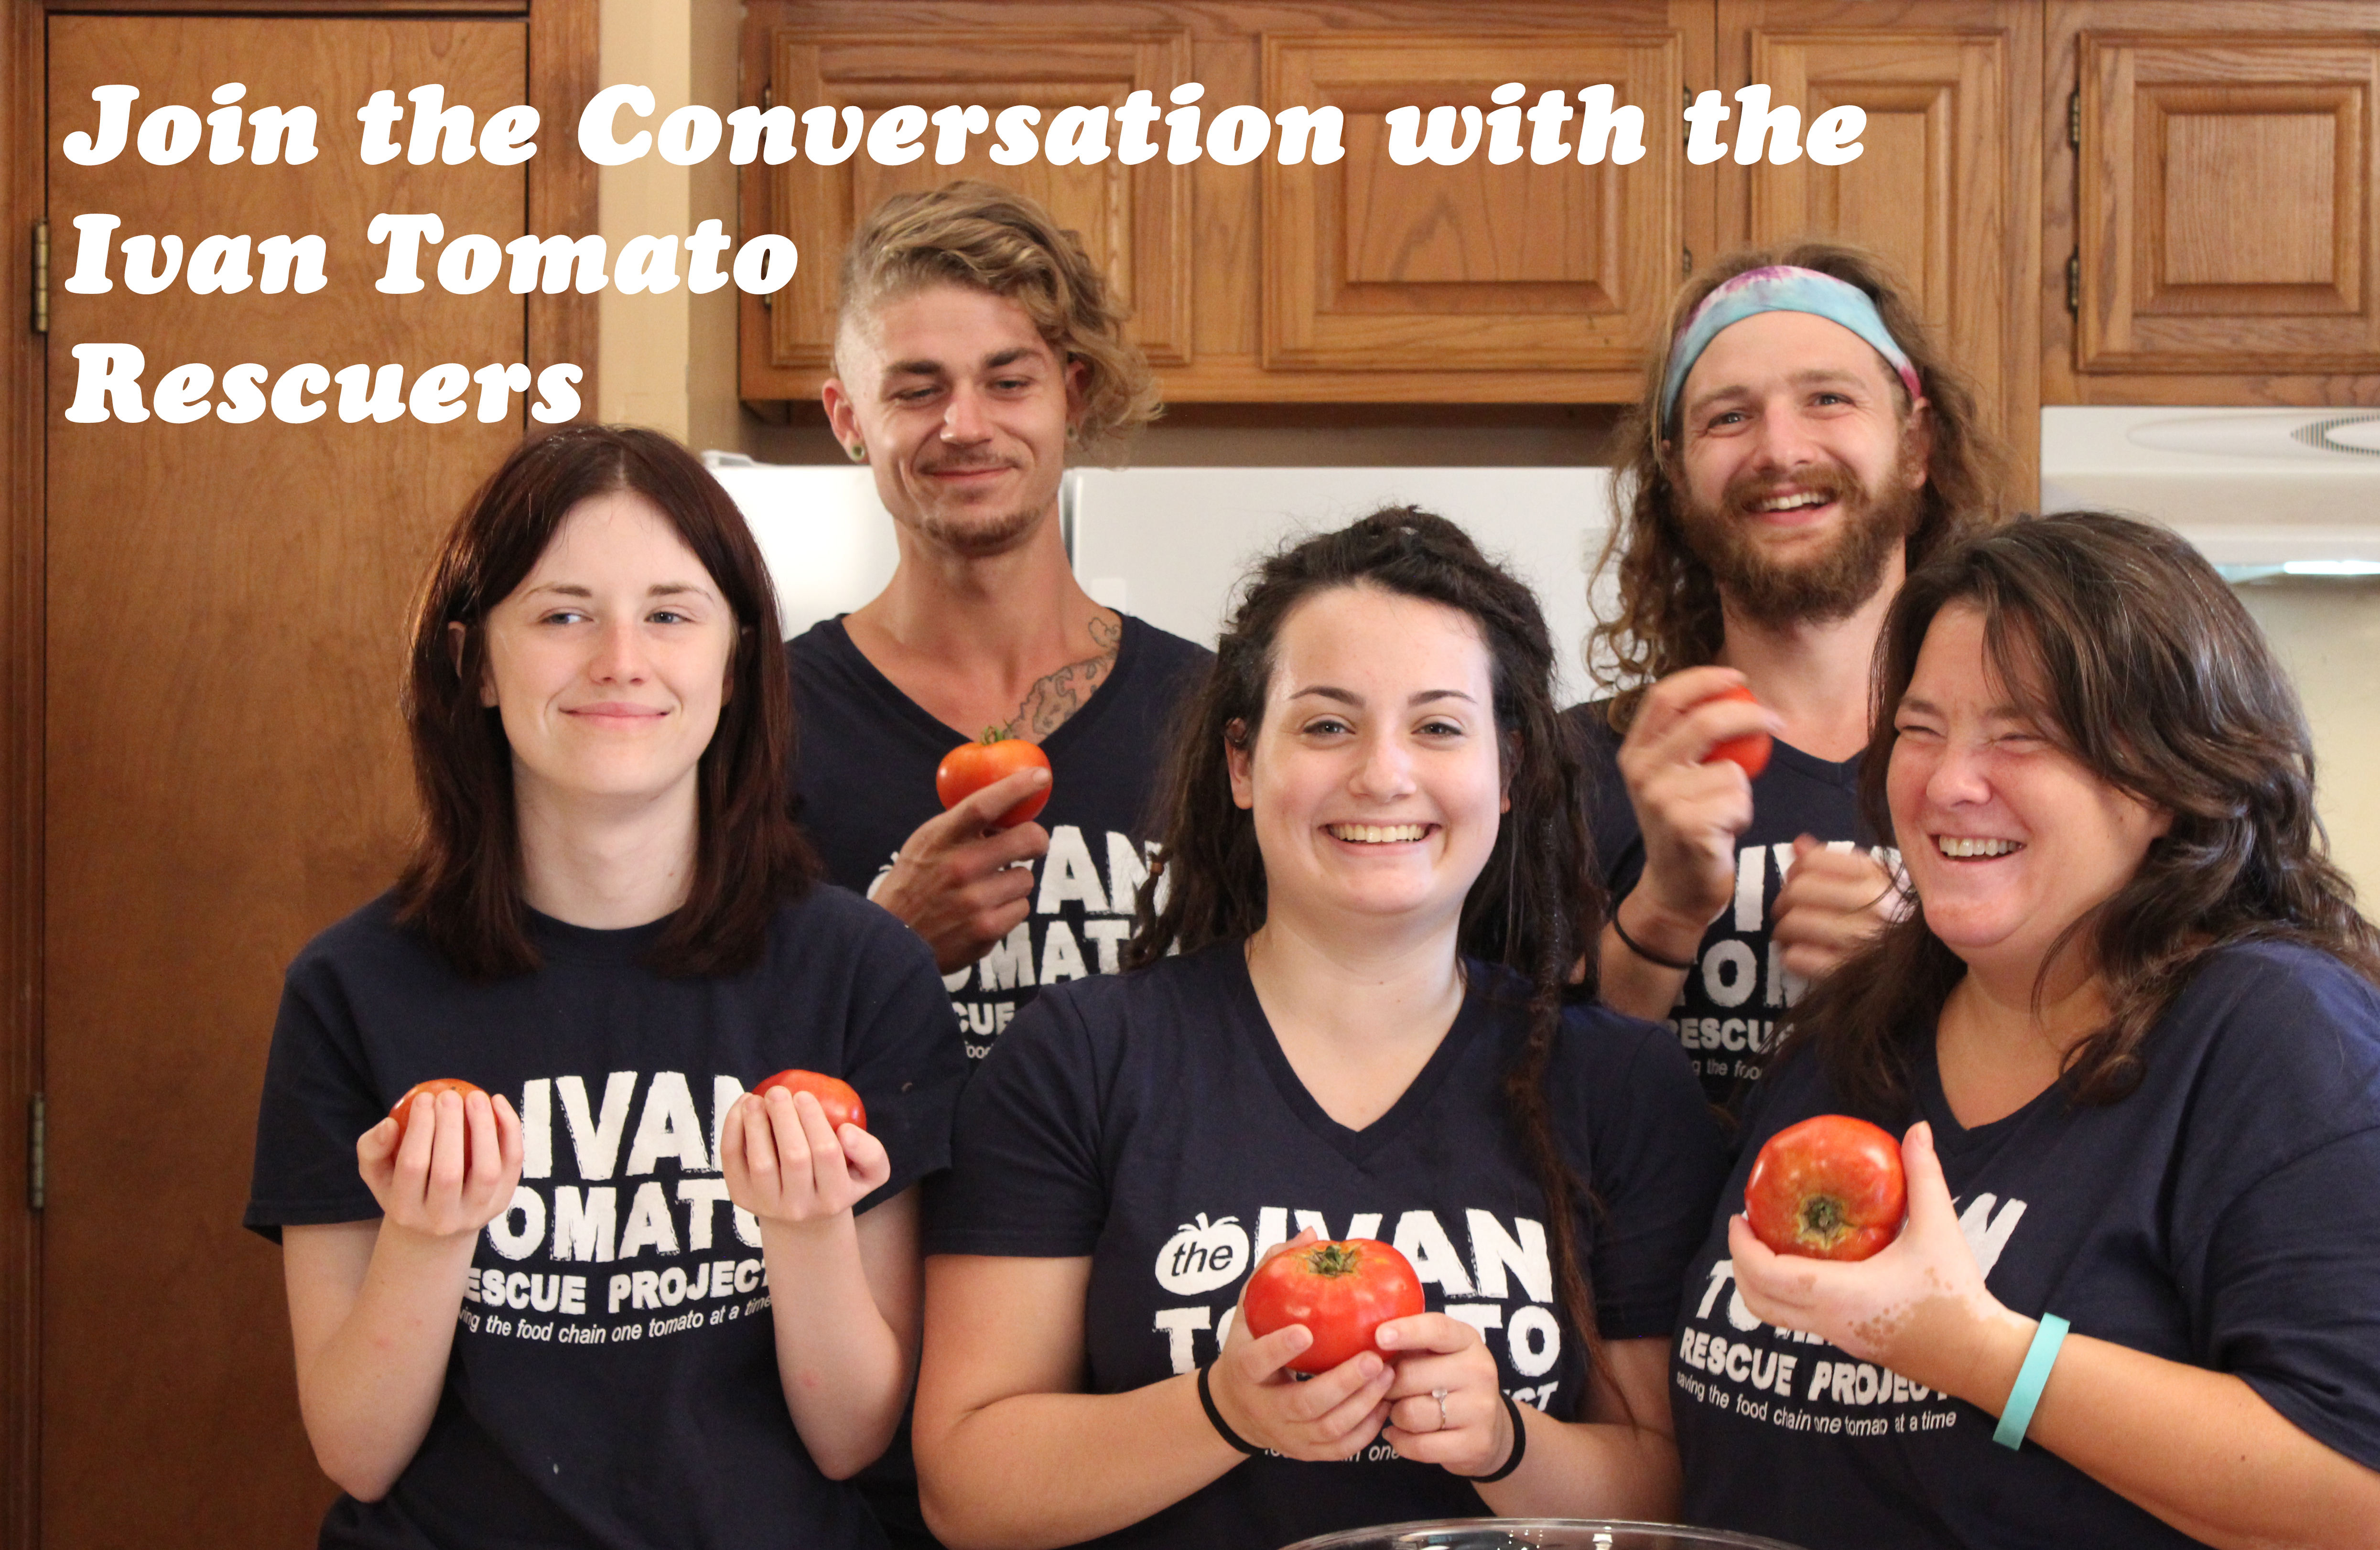 Ivan Tomato Rescuers – Join the Conversation?